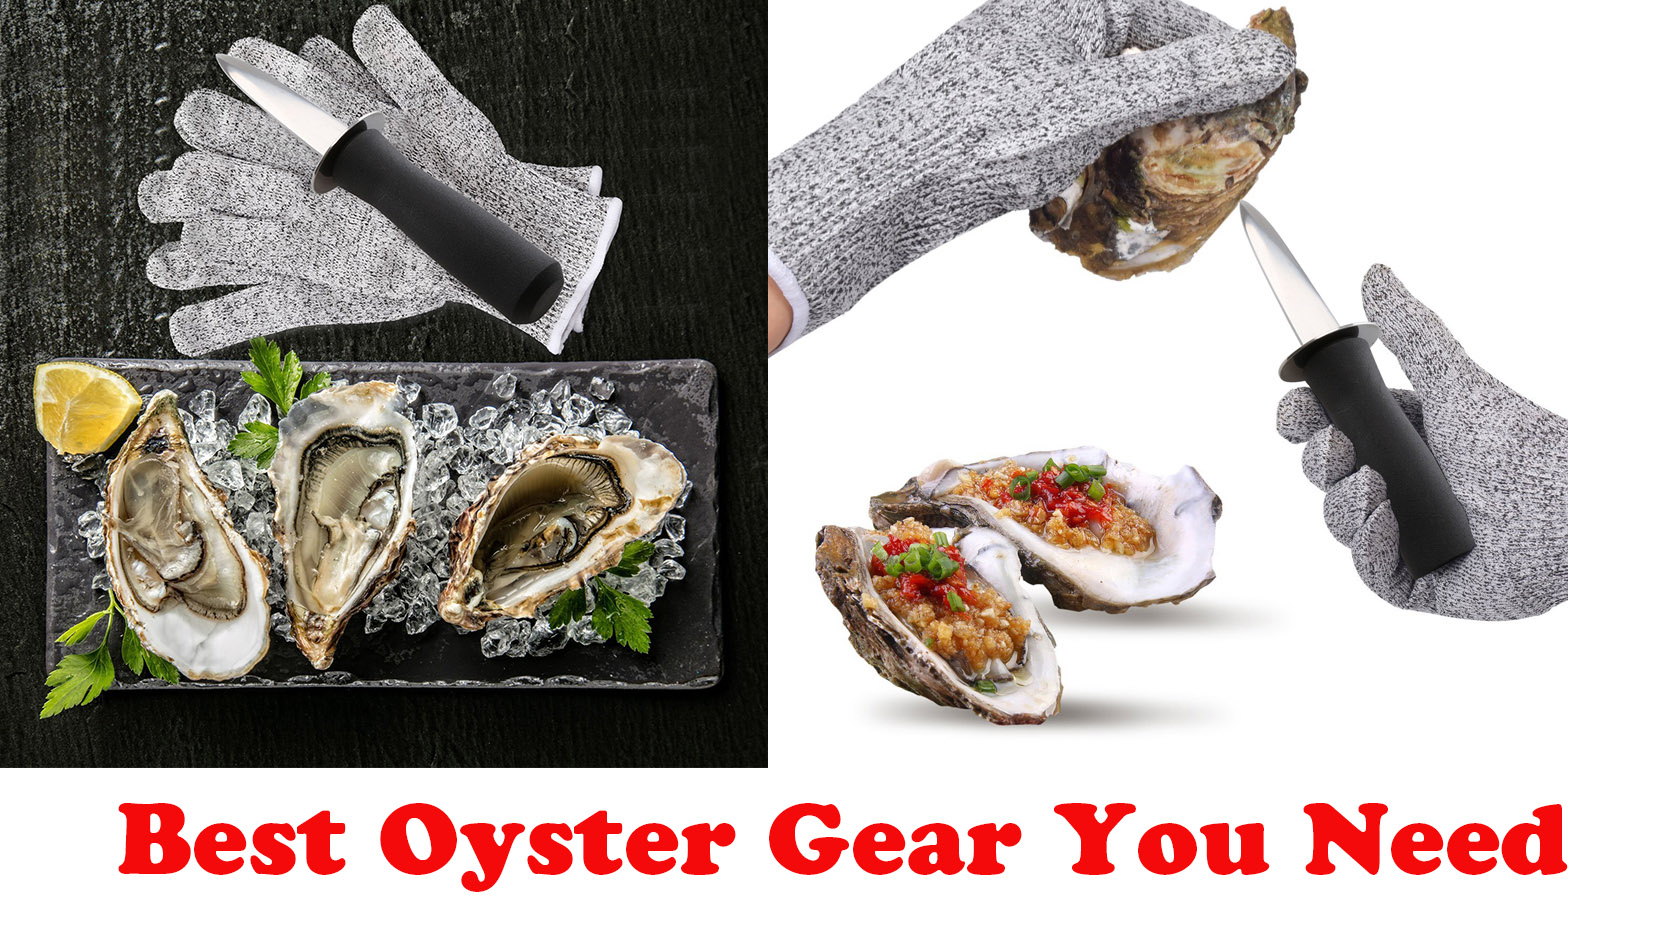 Best Oyster Gear You Need